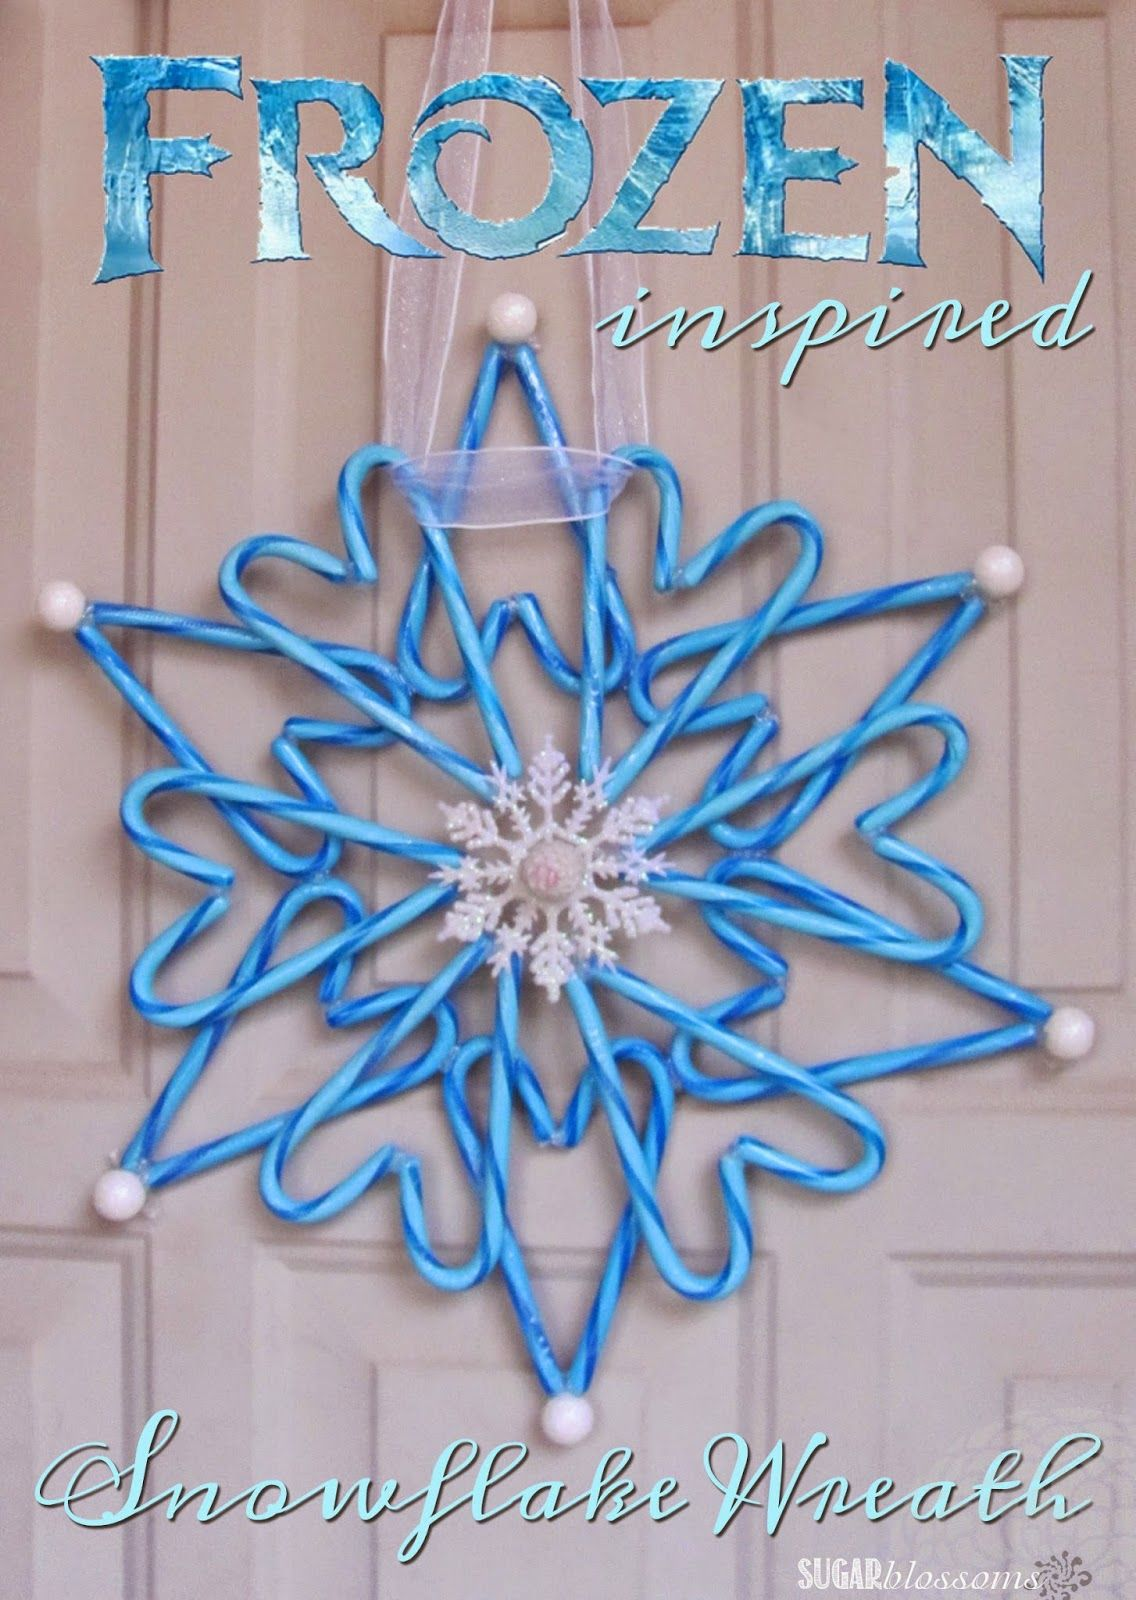 This Frozen-inspired candy cane wreath is a simple craft even kids can make! Anyone that knows me will be shocked to see this post. ... #candycanewreath